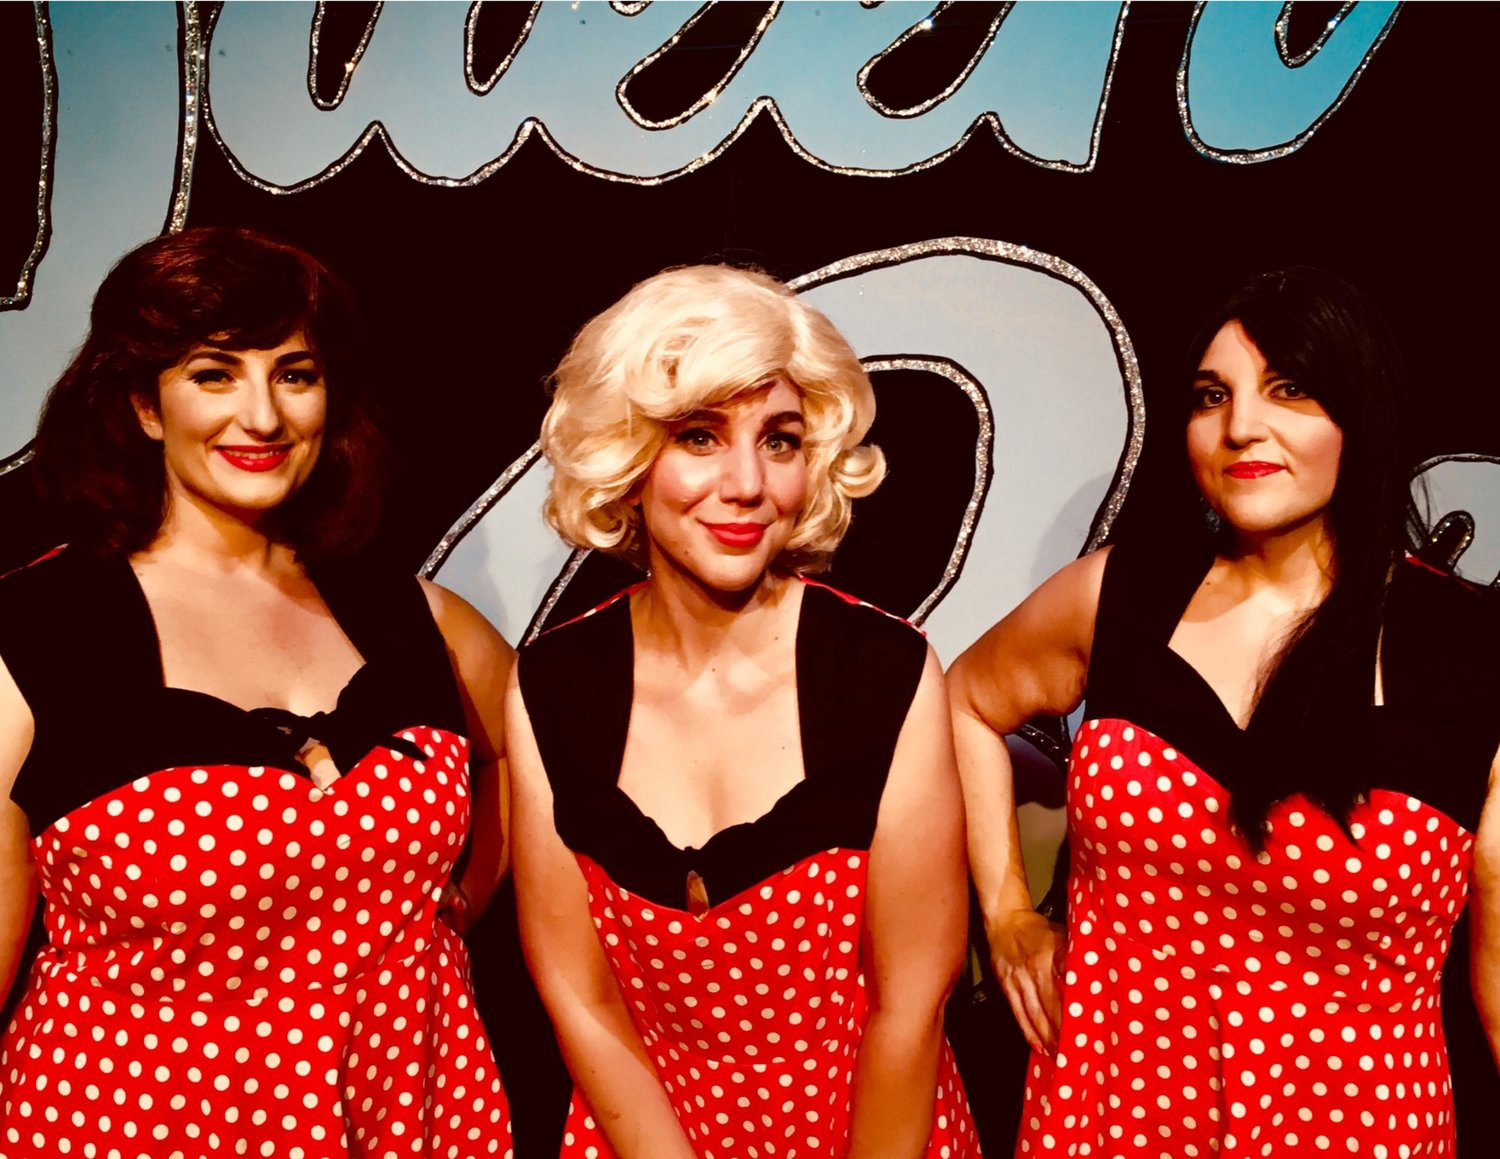 BWW Review: THE QUEEN BEES at Connecticut Cabaret Theatre